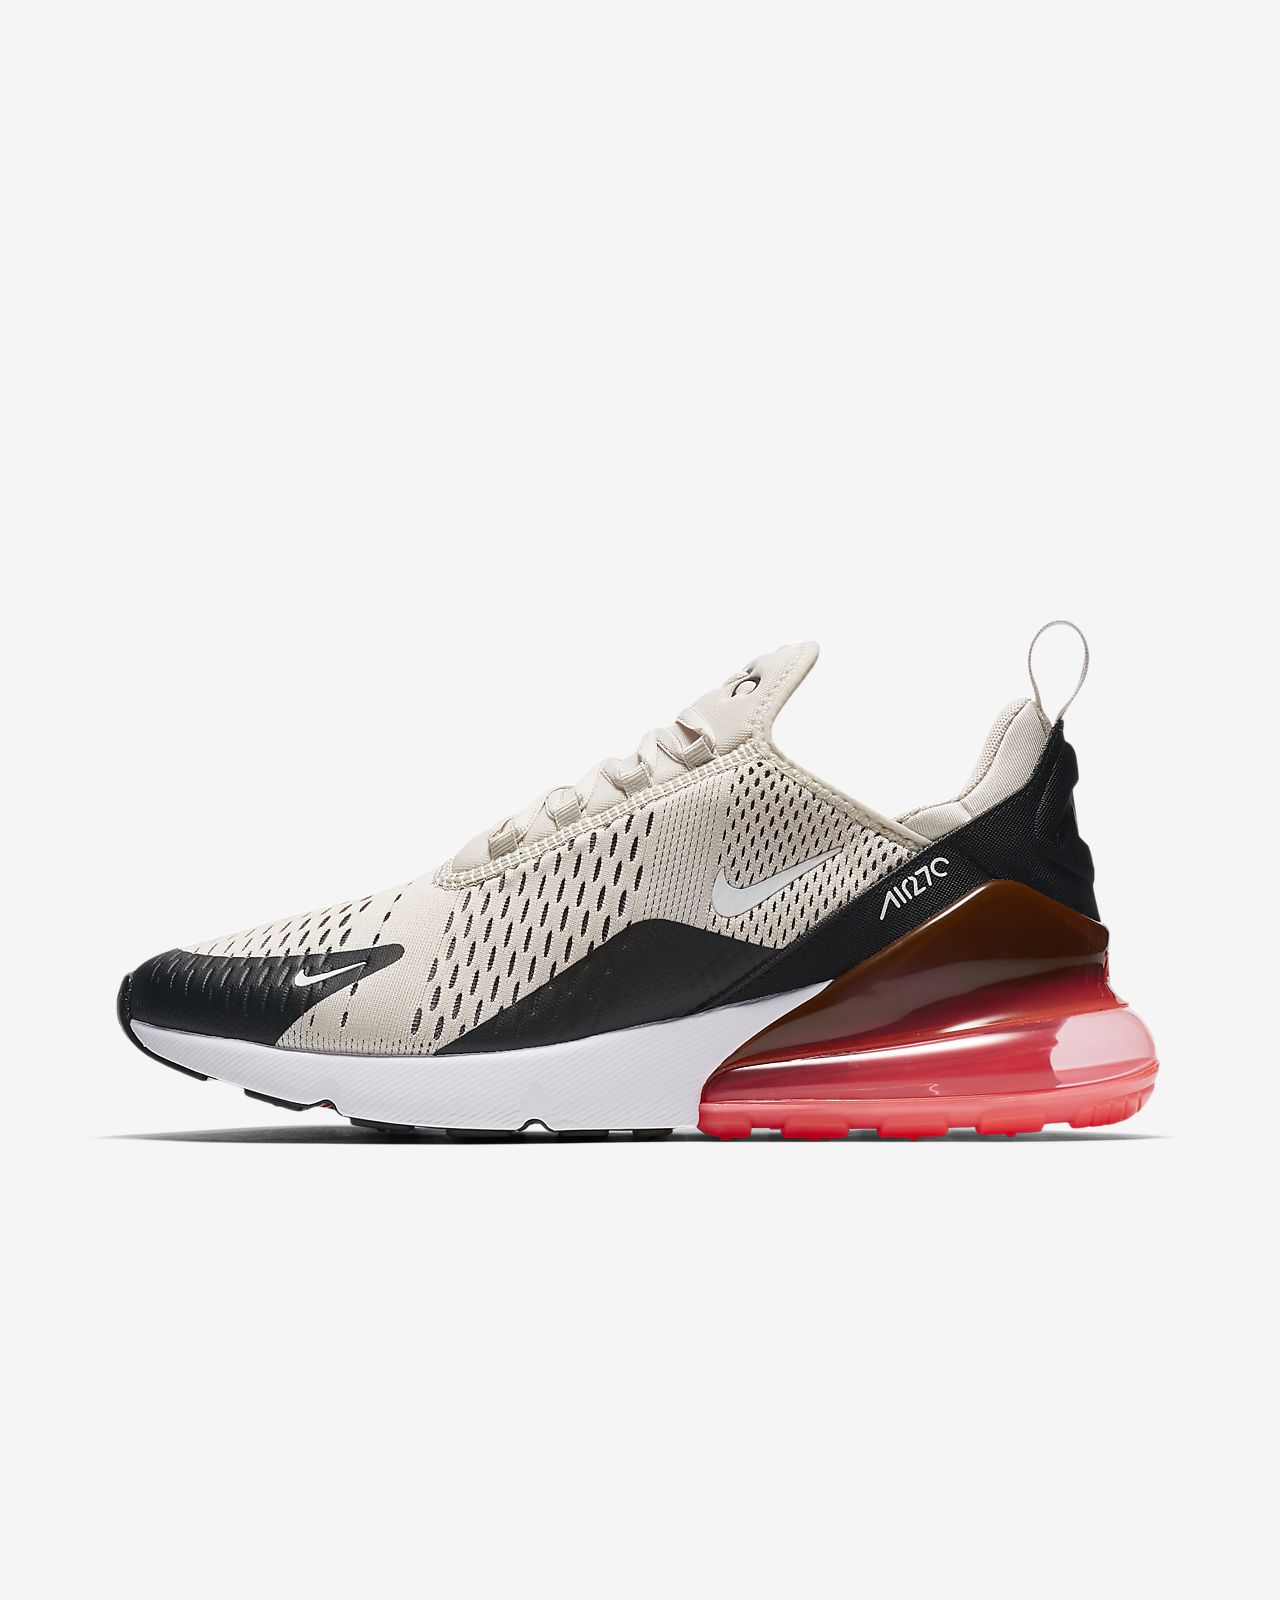 Nike Air 270 Nike Air Max 270 Wine Red Black White Latest